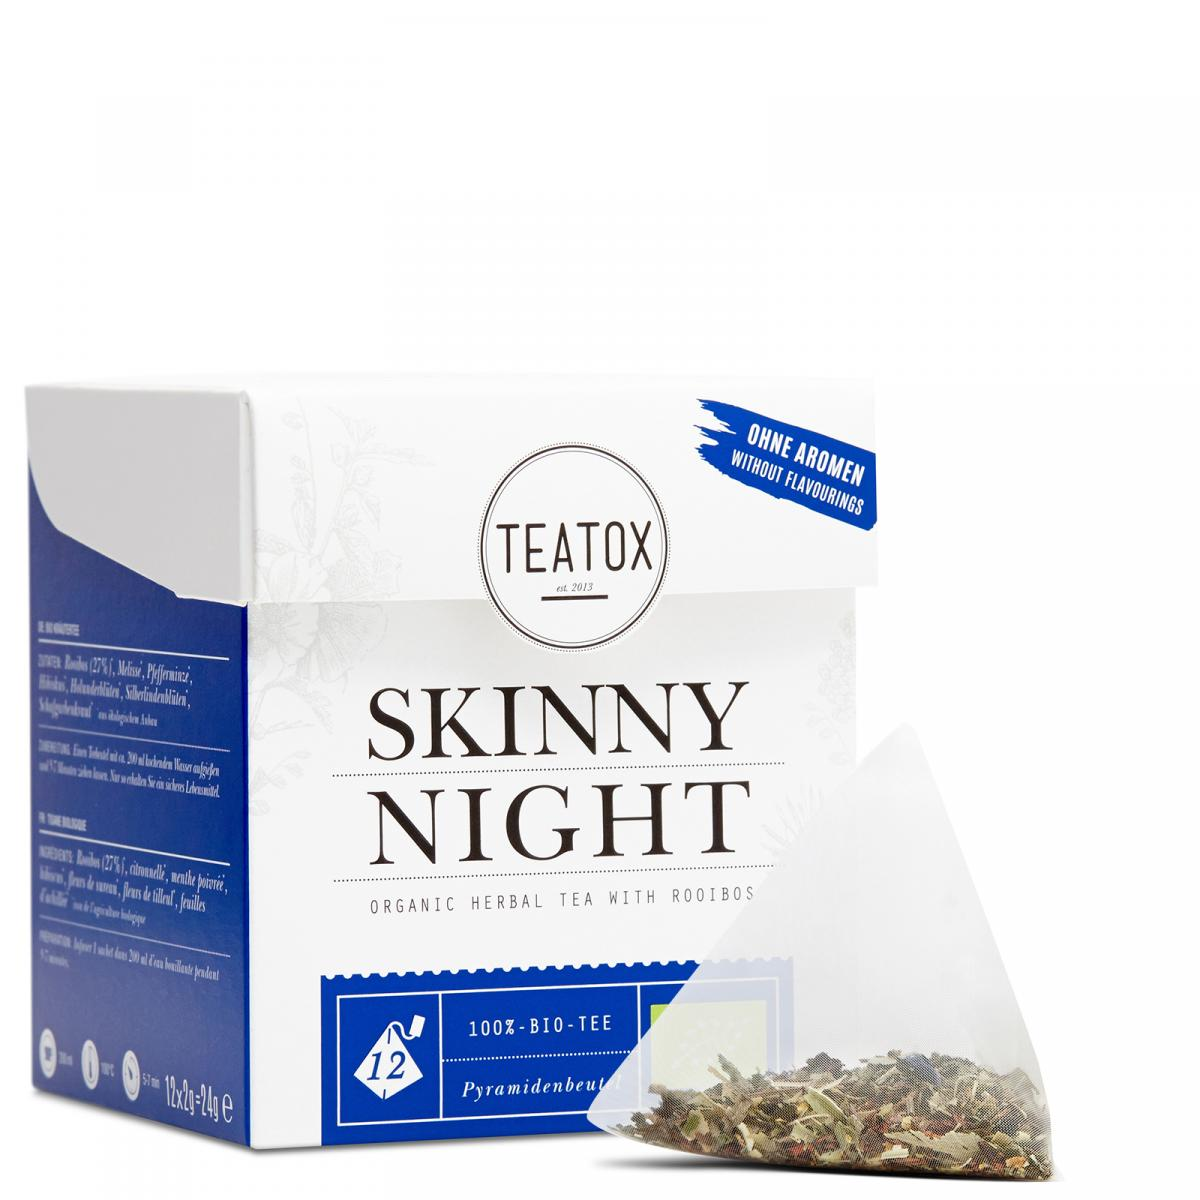 Skinny Night 24g, filteres